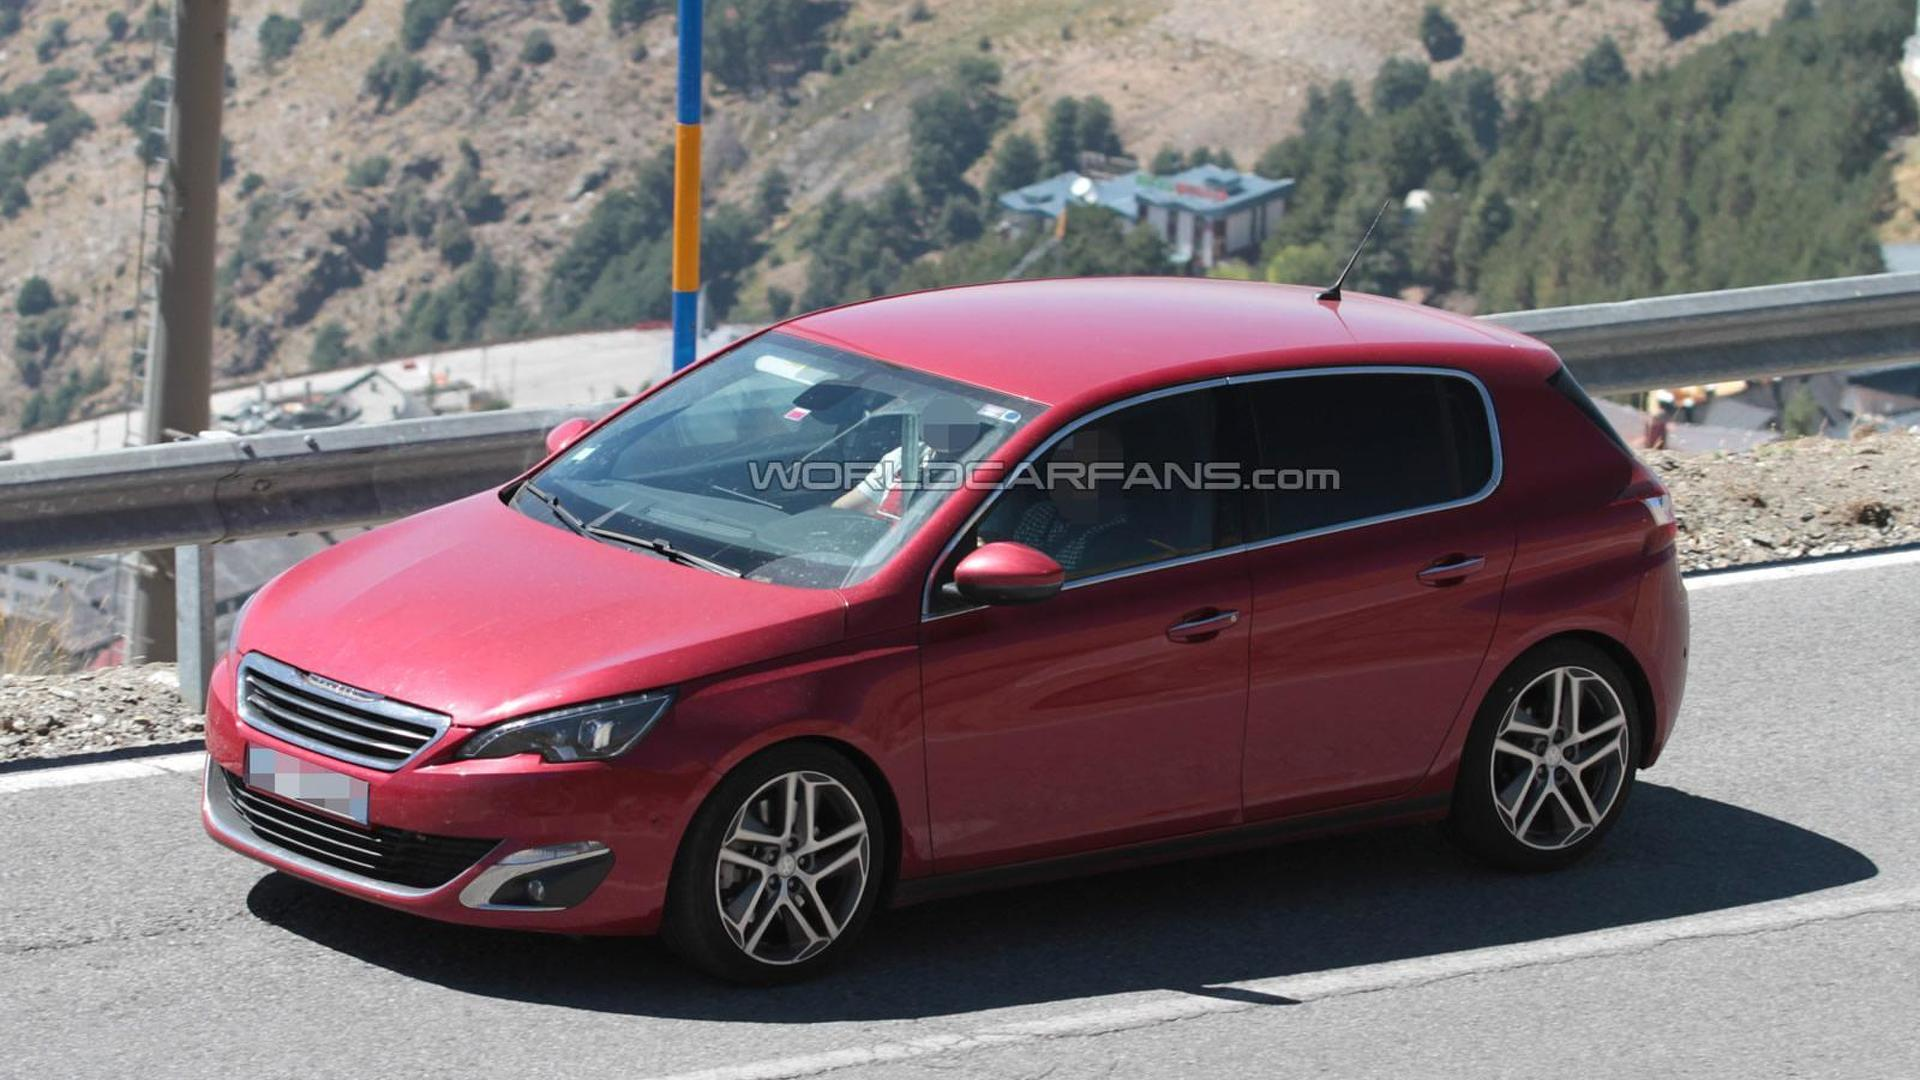 Peugeot 308 GTI reportedly coming next year with 270 bhp